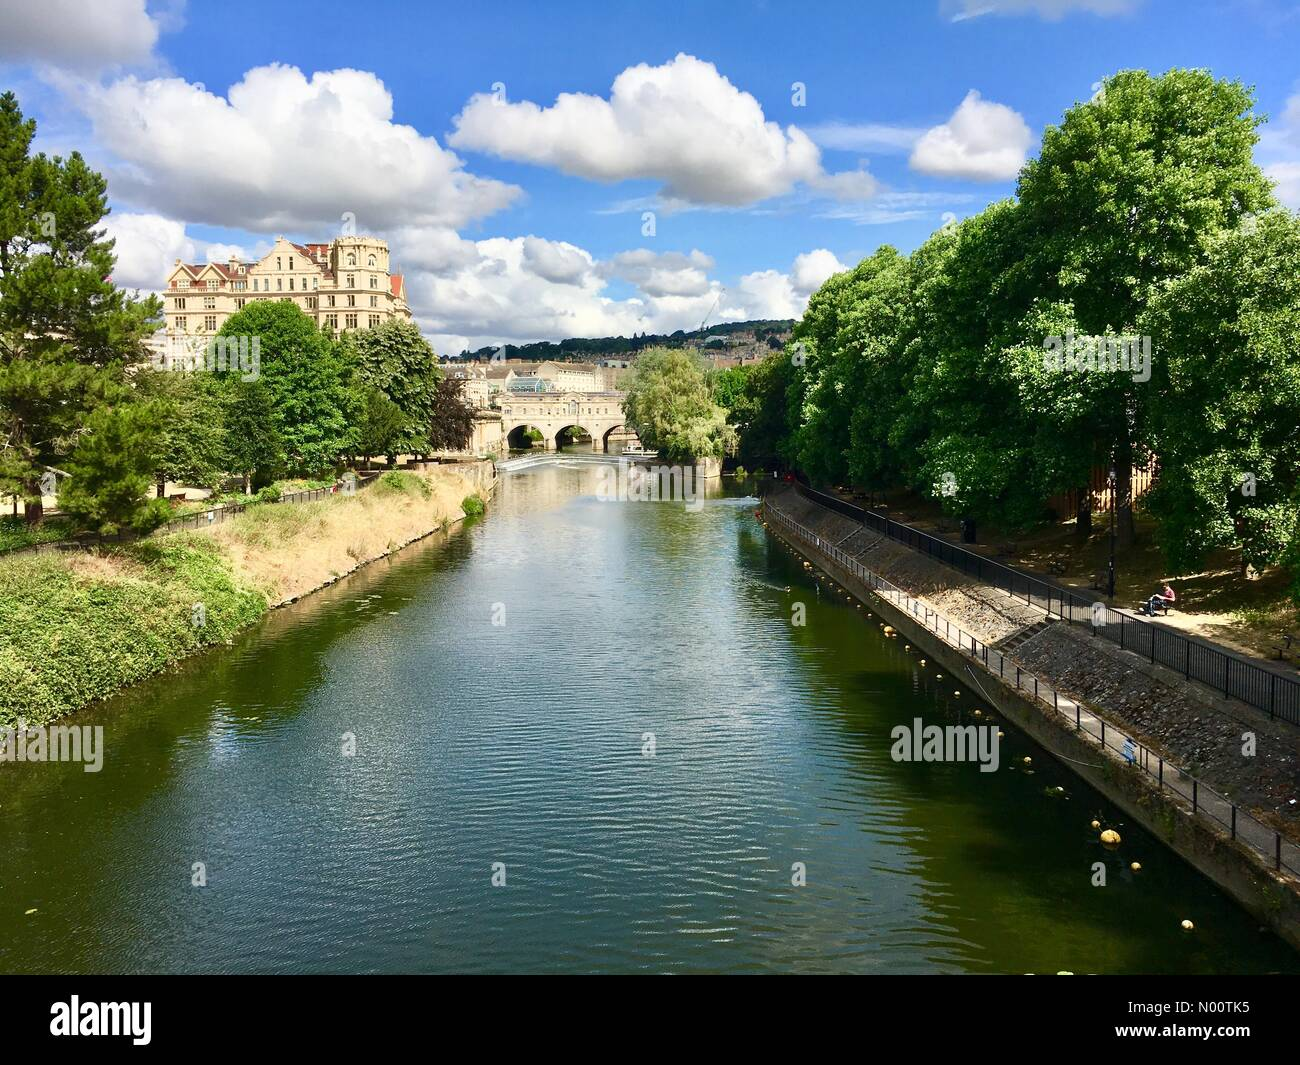 bath-uk-17th-july-2018-uk-weather-partly